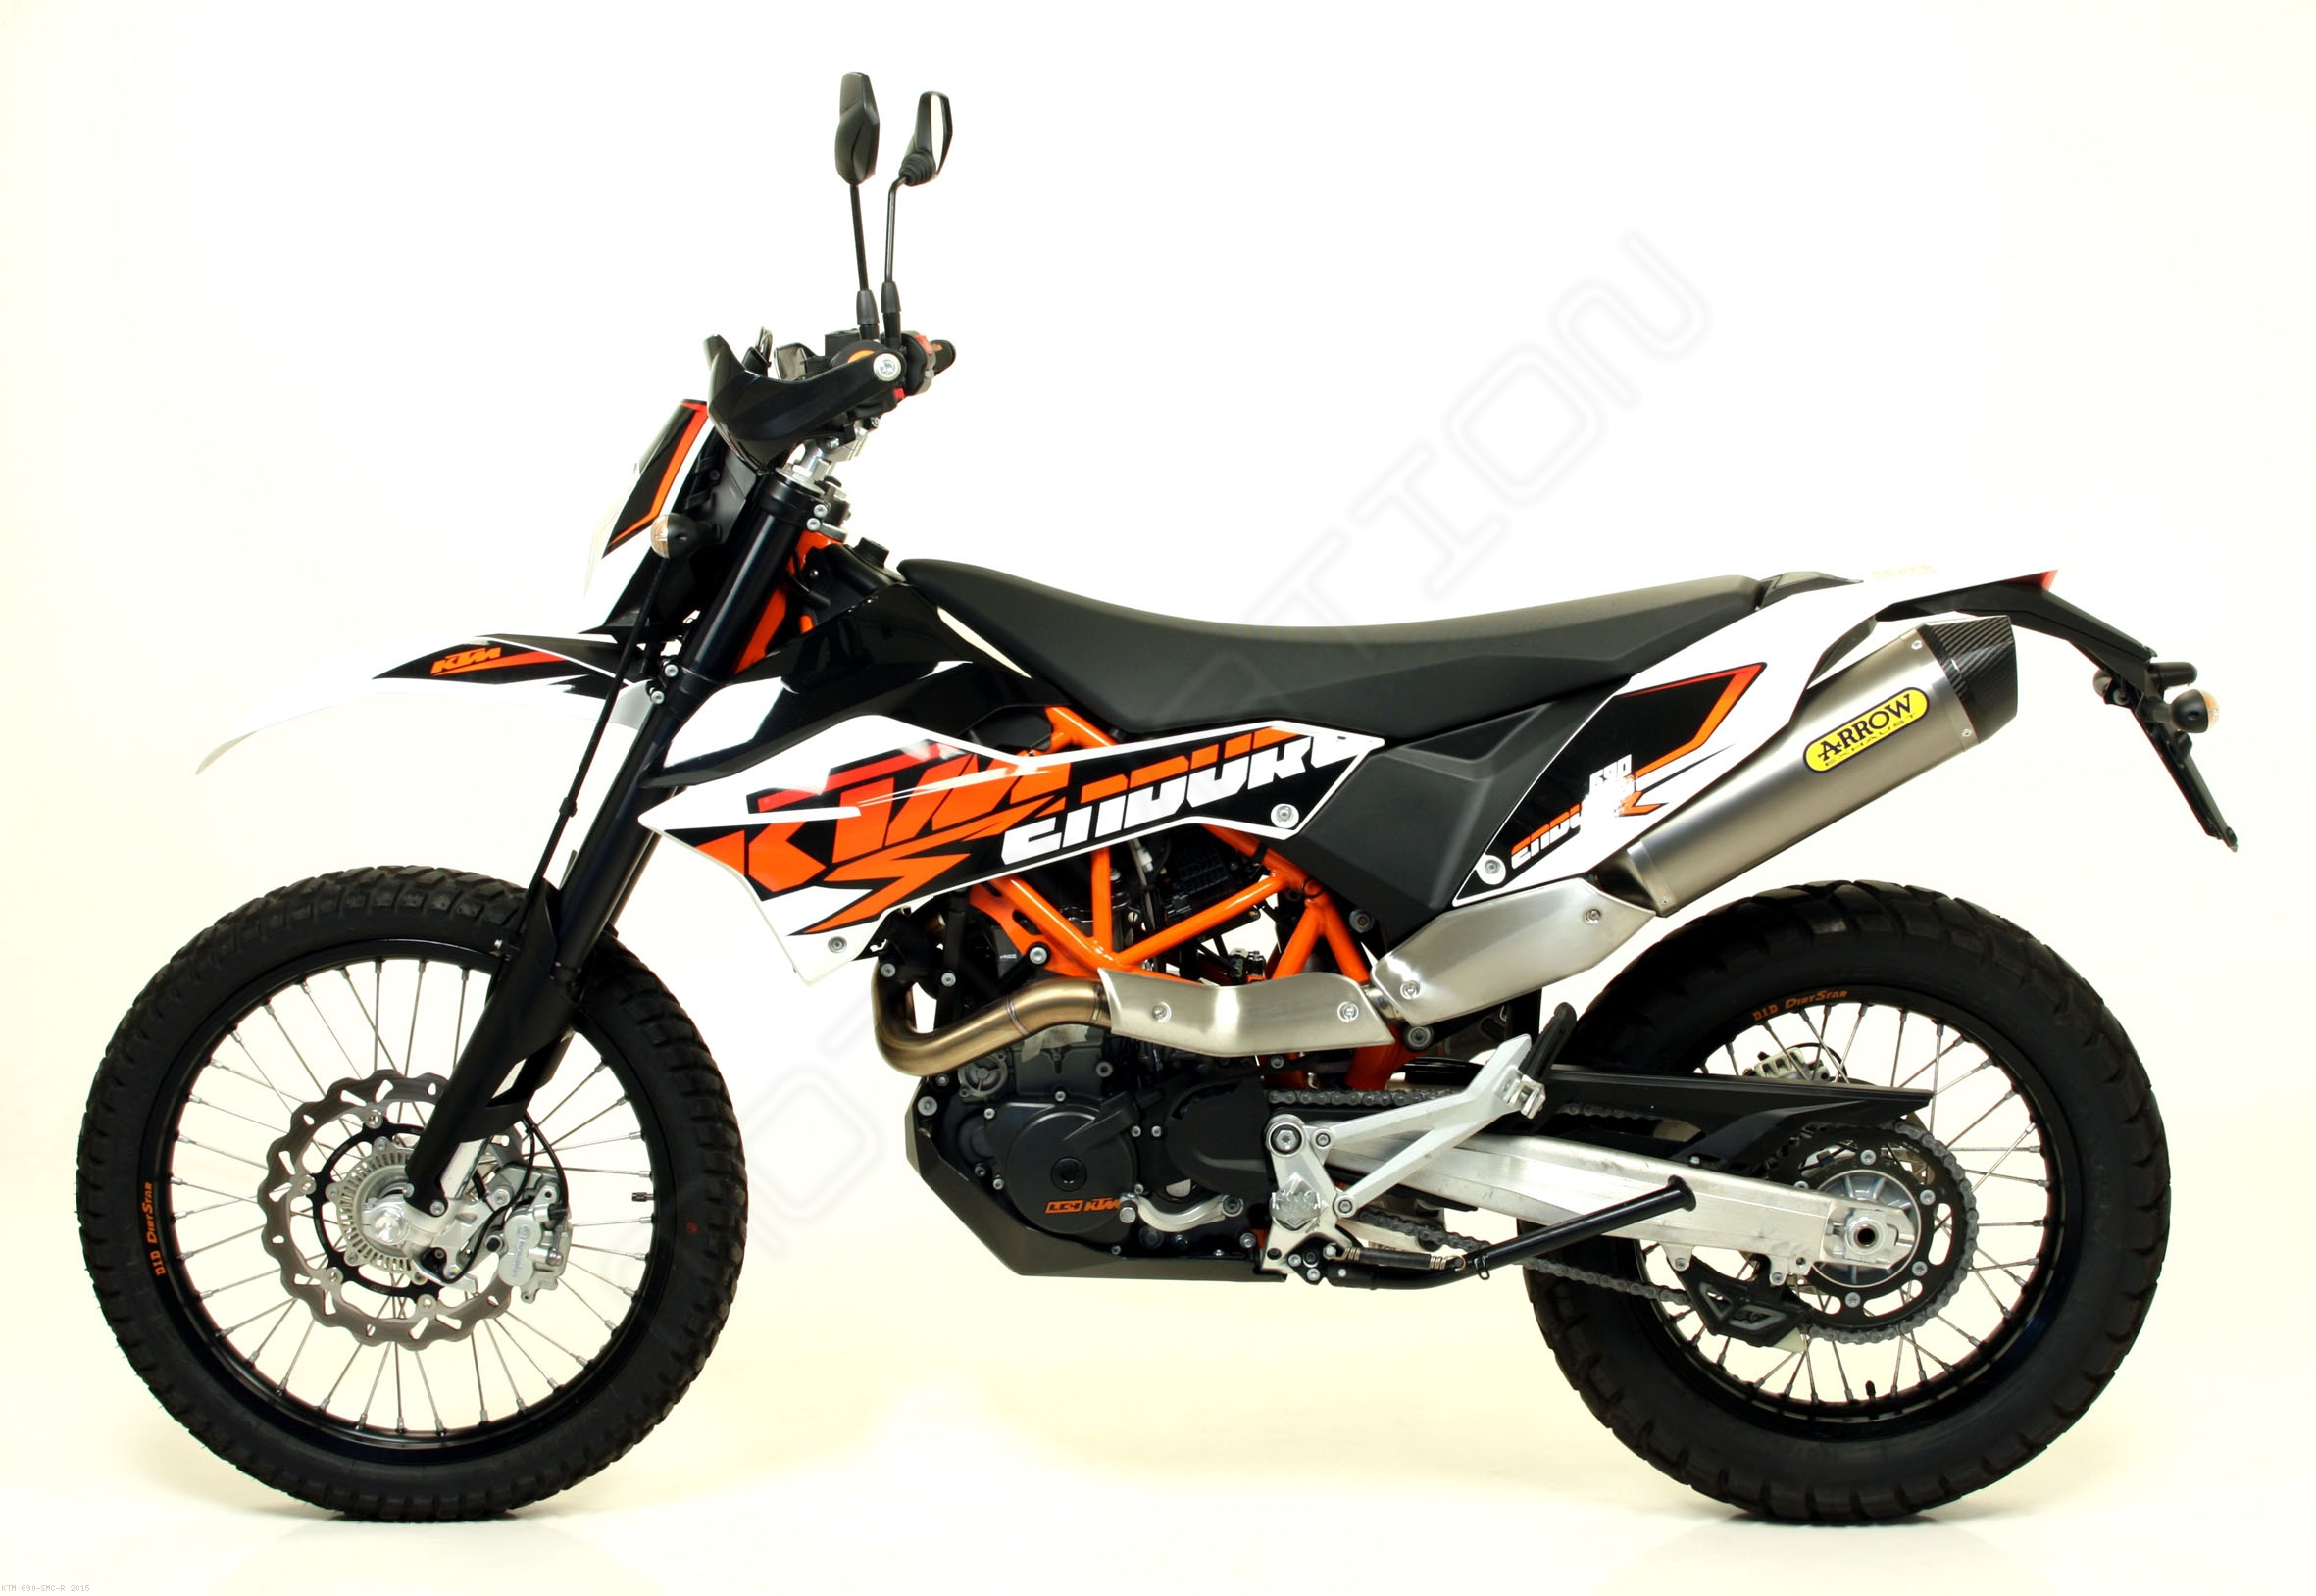 Ktm 625 Smc Wiring Diagram Explained Diagrams 640 Lc4 Supermoto 690 User Manual Professional Ebooks U2022 Wallpaper